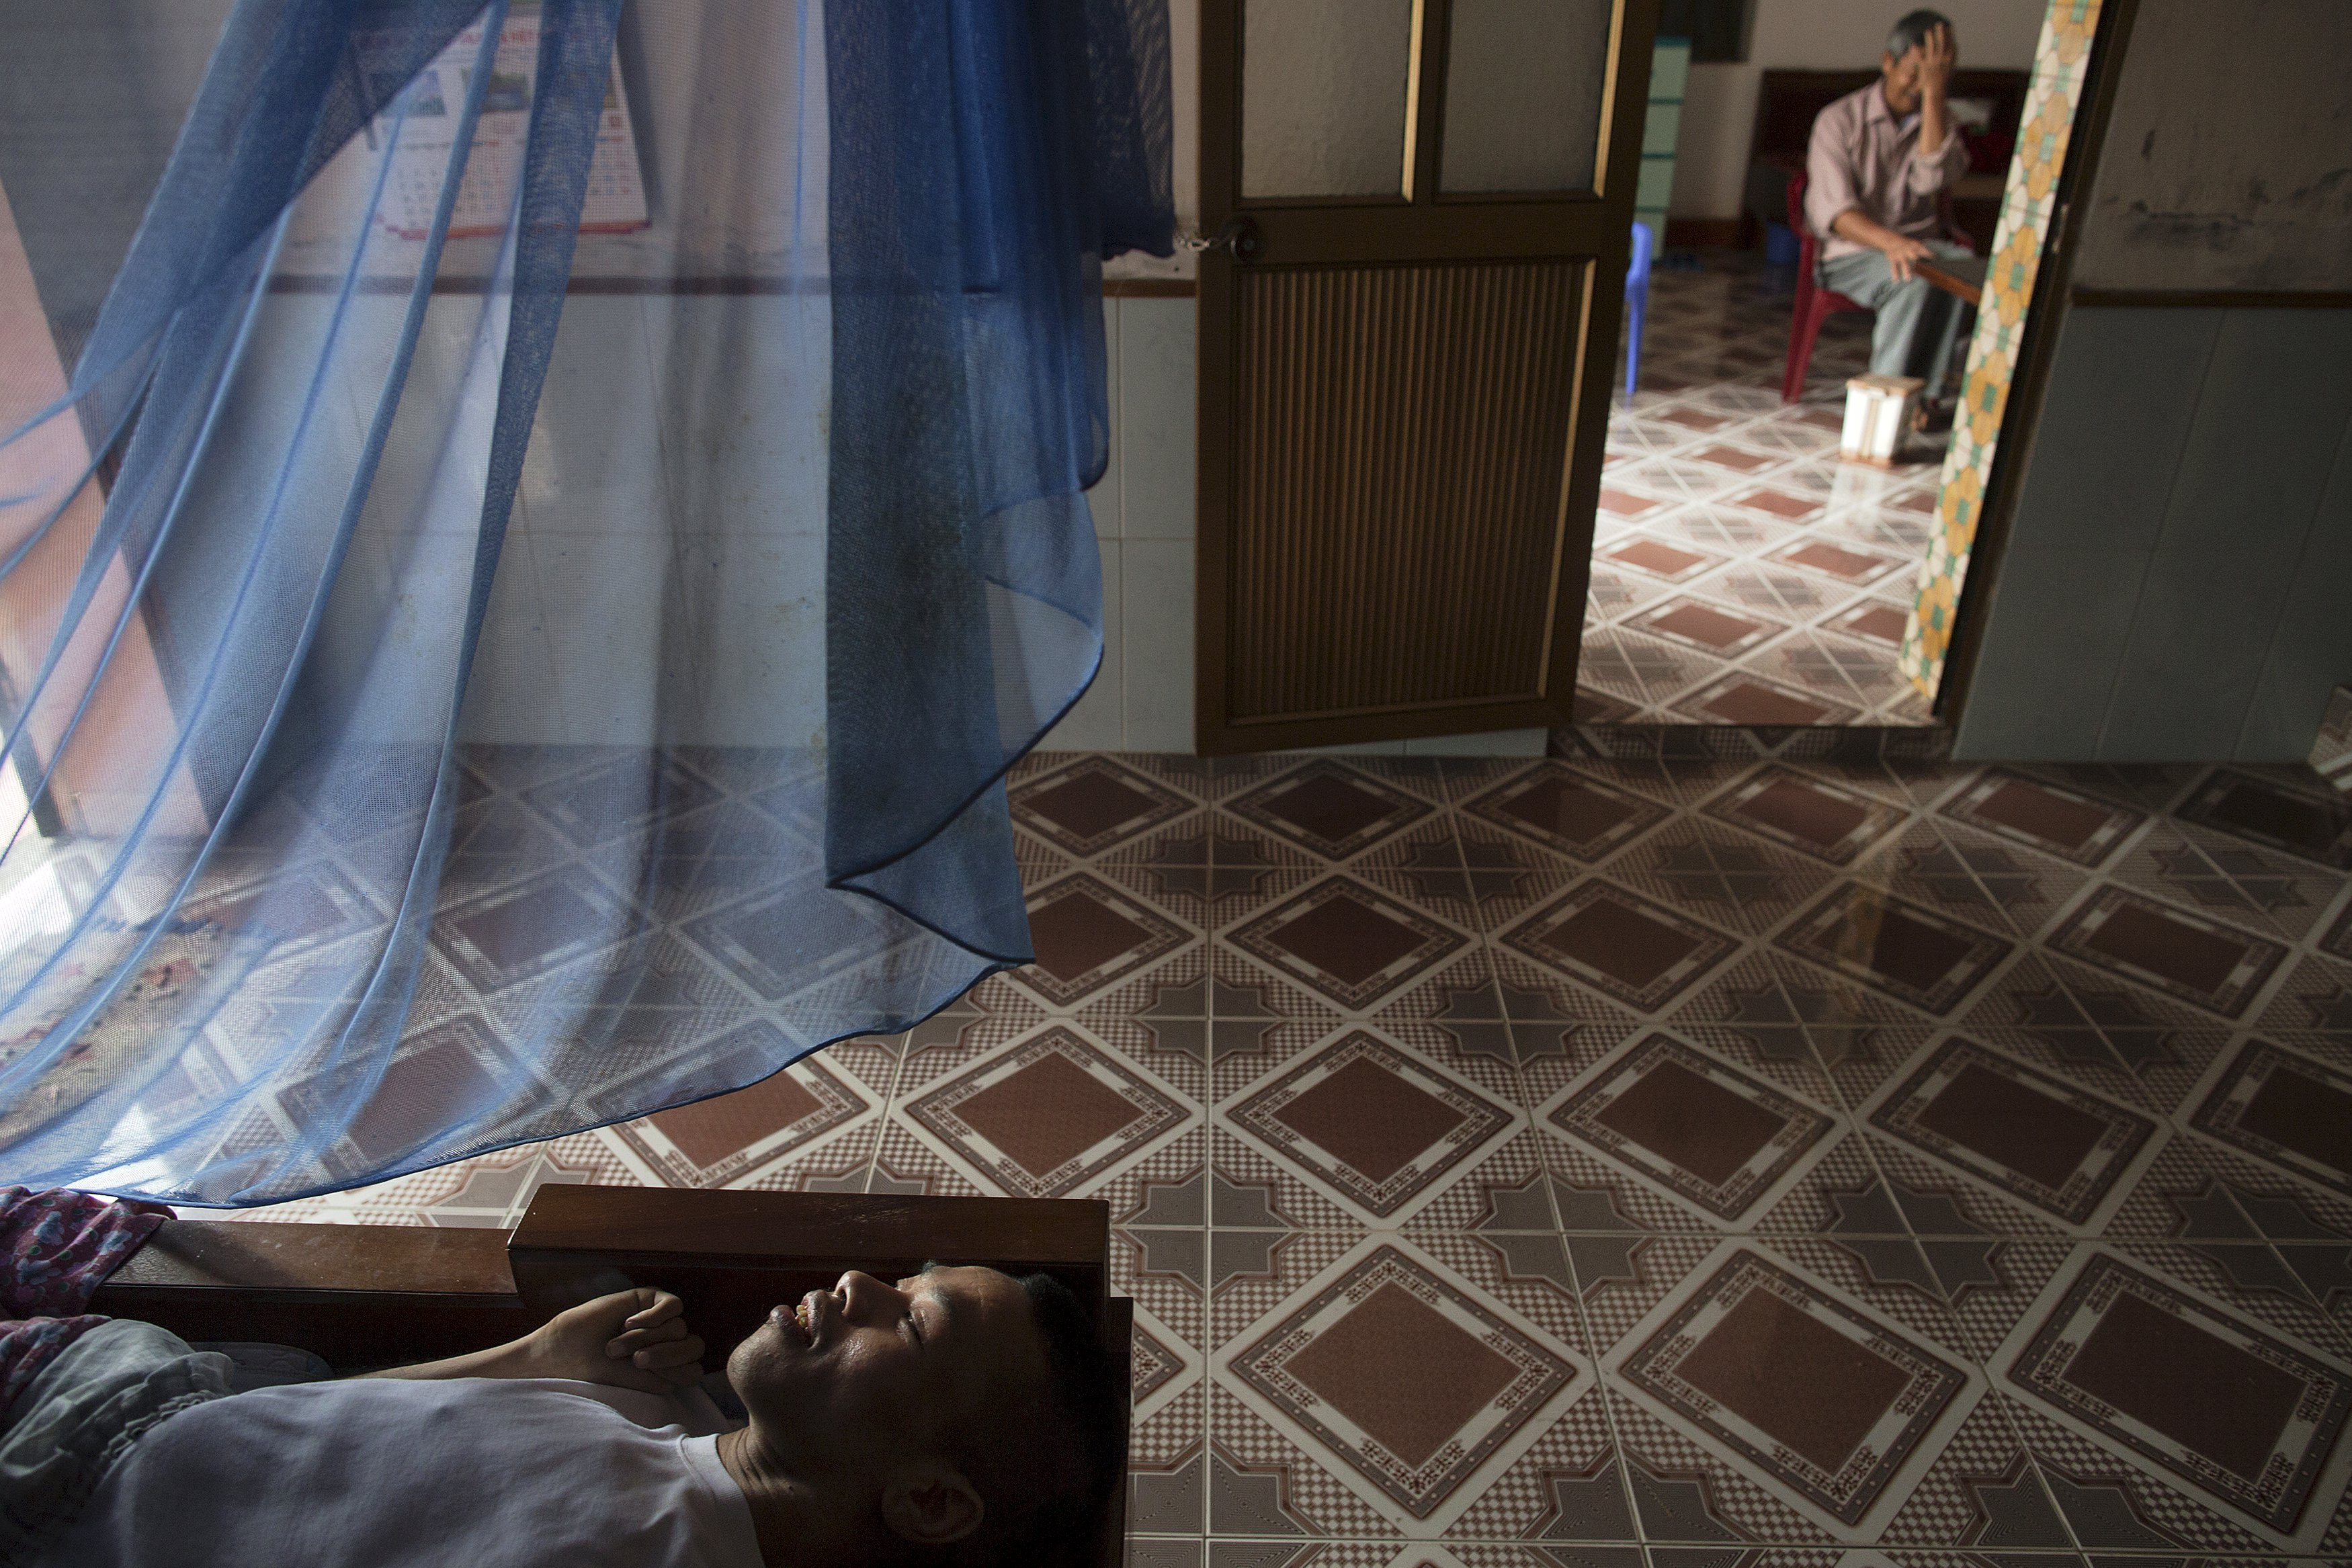 Lai Van Manh rests in bed as his father Lai Van Bien receives guests in their house in Tuong An village, in Thai Binh province in northern Vietnam April 9, 2015. Lai Van Bien, a former intelligence officer in the Vietnamese army in the North, said that during the Vietnam War he served in an area that was heavily contaminated by Agent Orange. Lai Van Bien and his wife now care for their two physically and mentally disabled sons whose health condition the family and local officials link to the effects of Agent Orange.